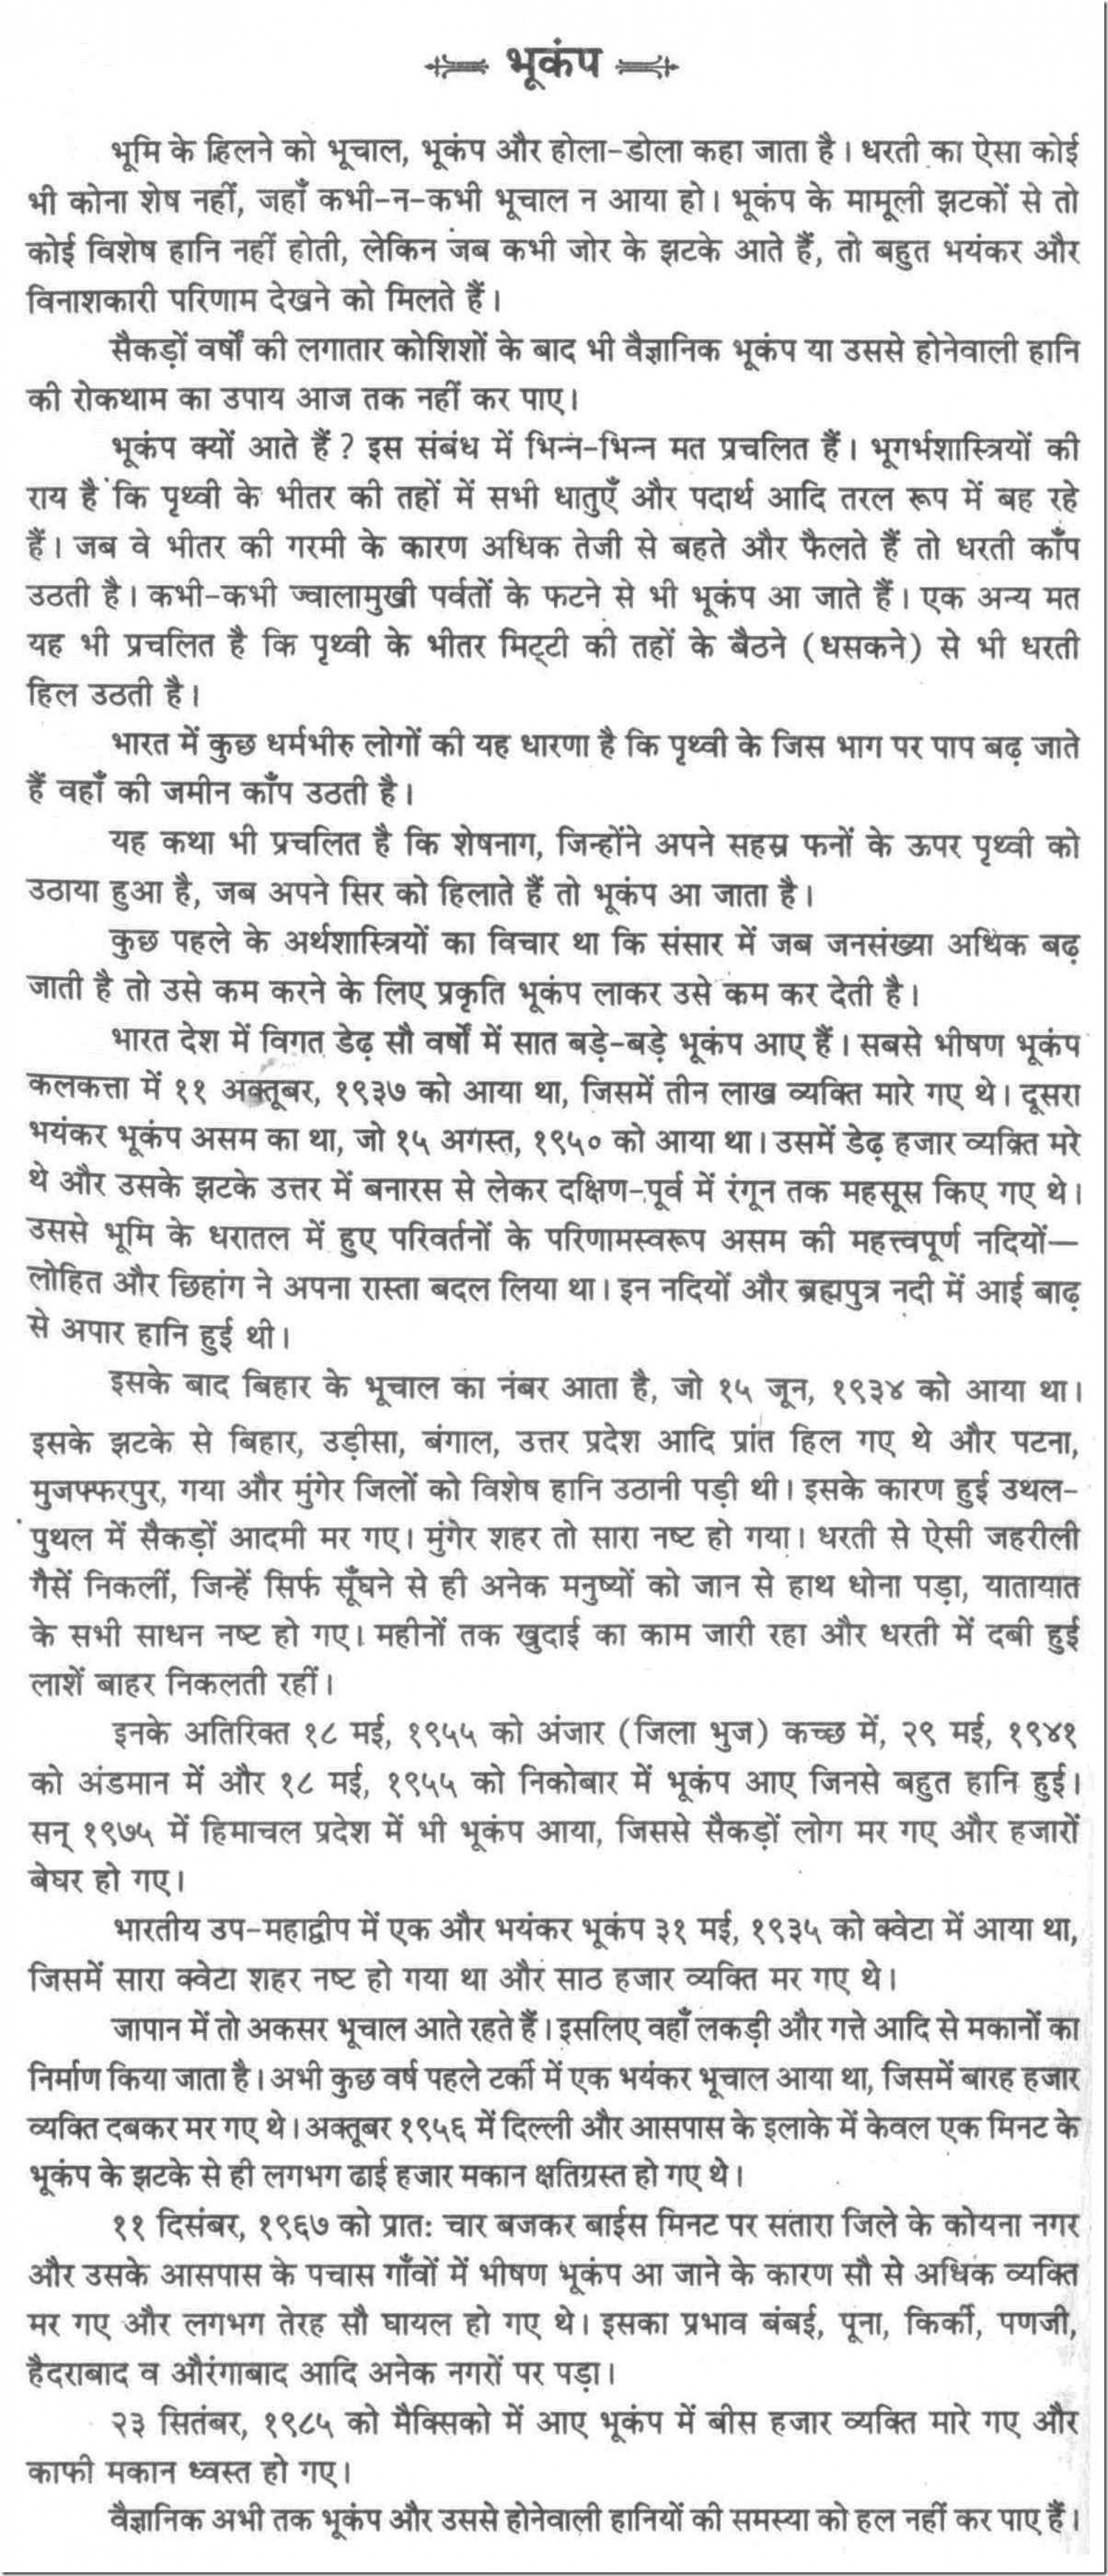 005 Essay Of Earthquake About In Questions For Students 1000115 School On Impressive Occurred India During 2011-12 English Hindi 1920